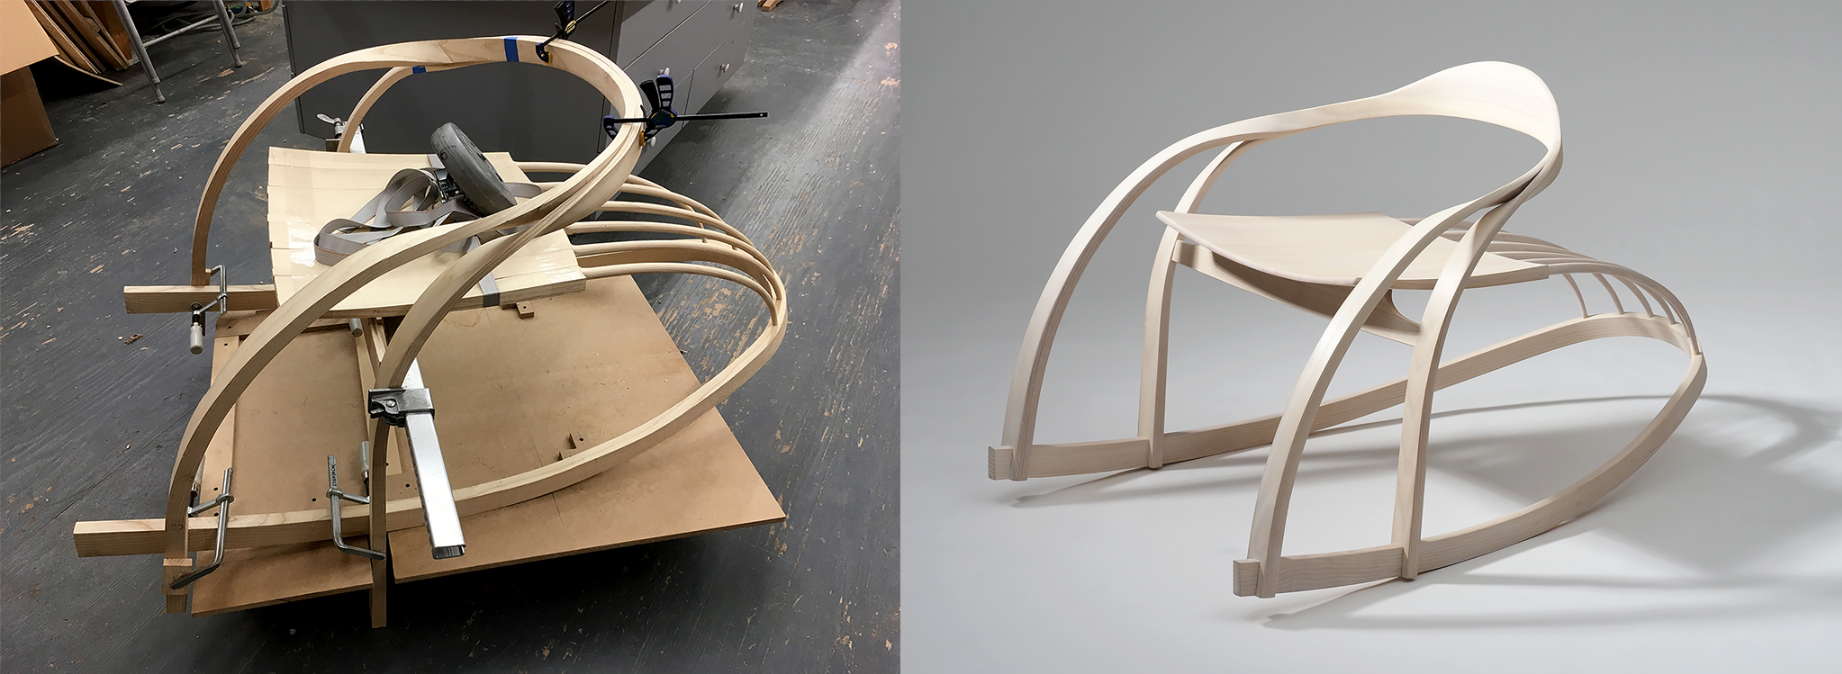 in-process and completed chair by Yuri Kobayashi